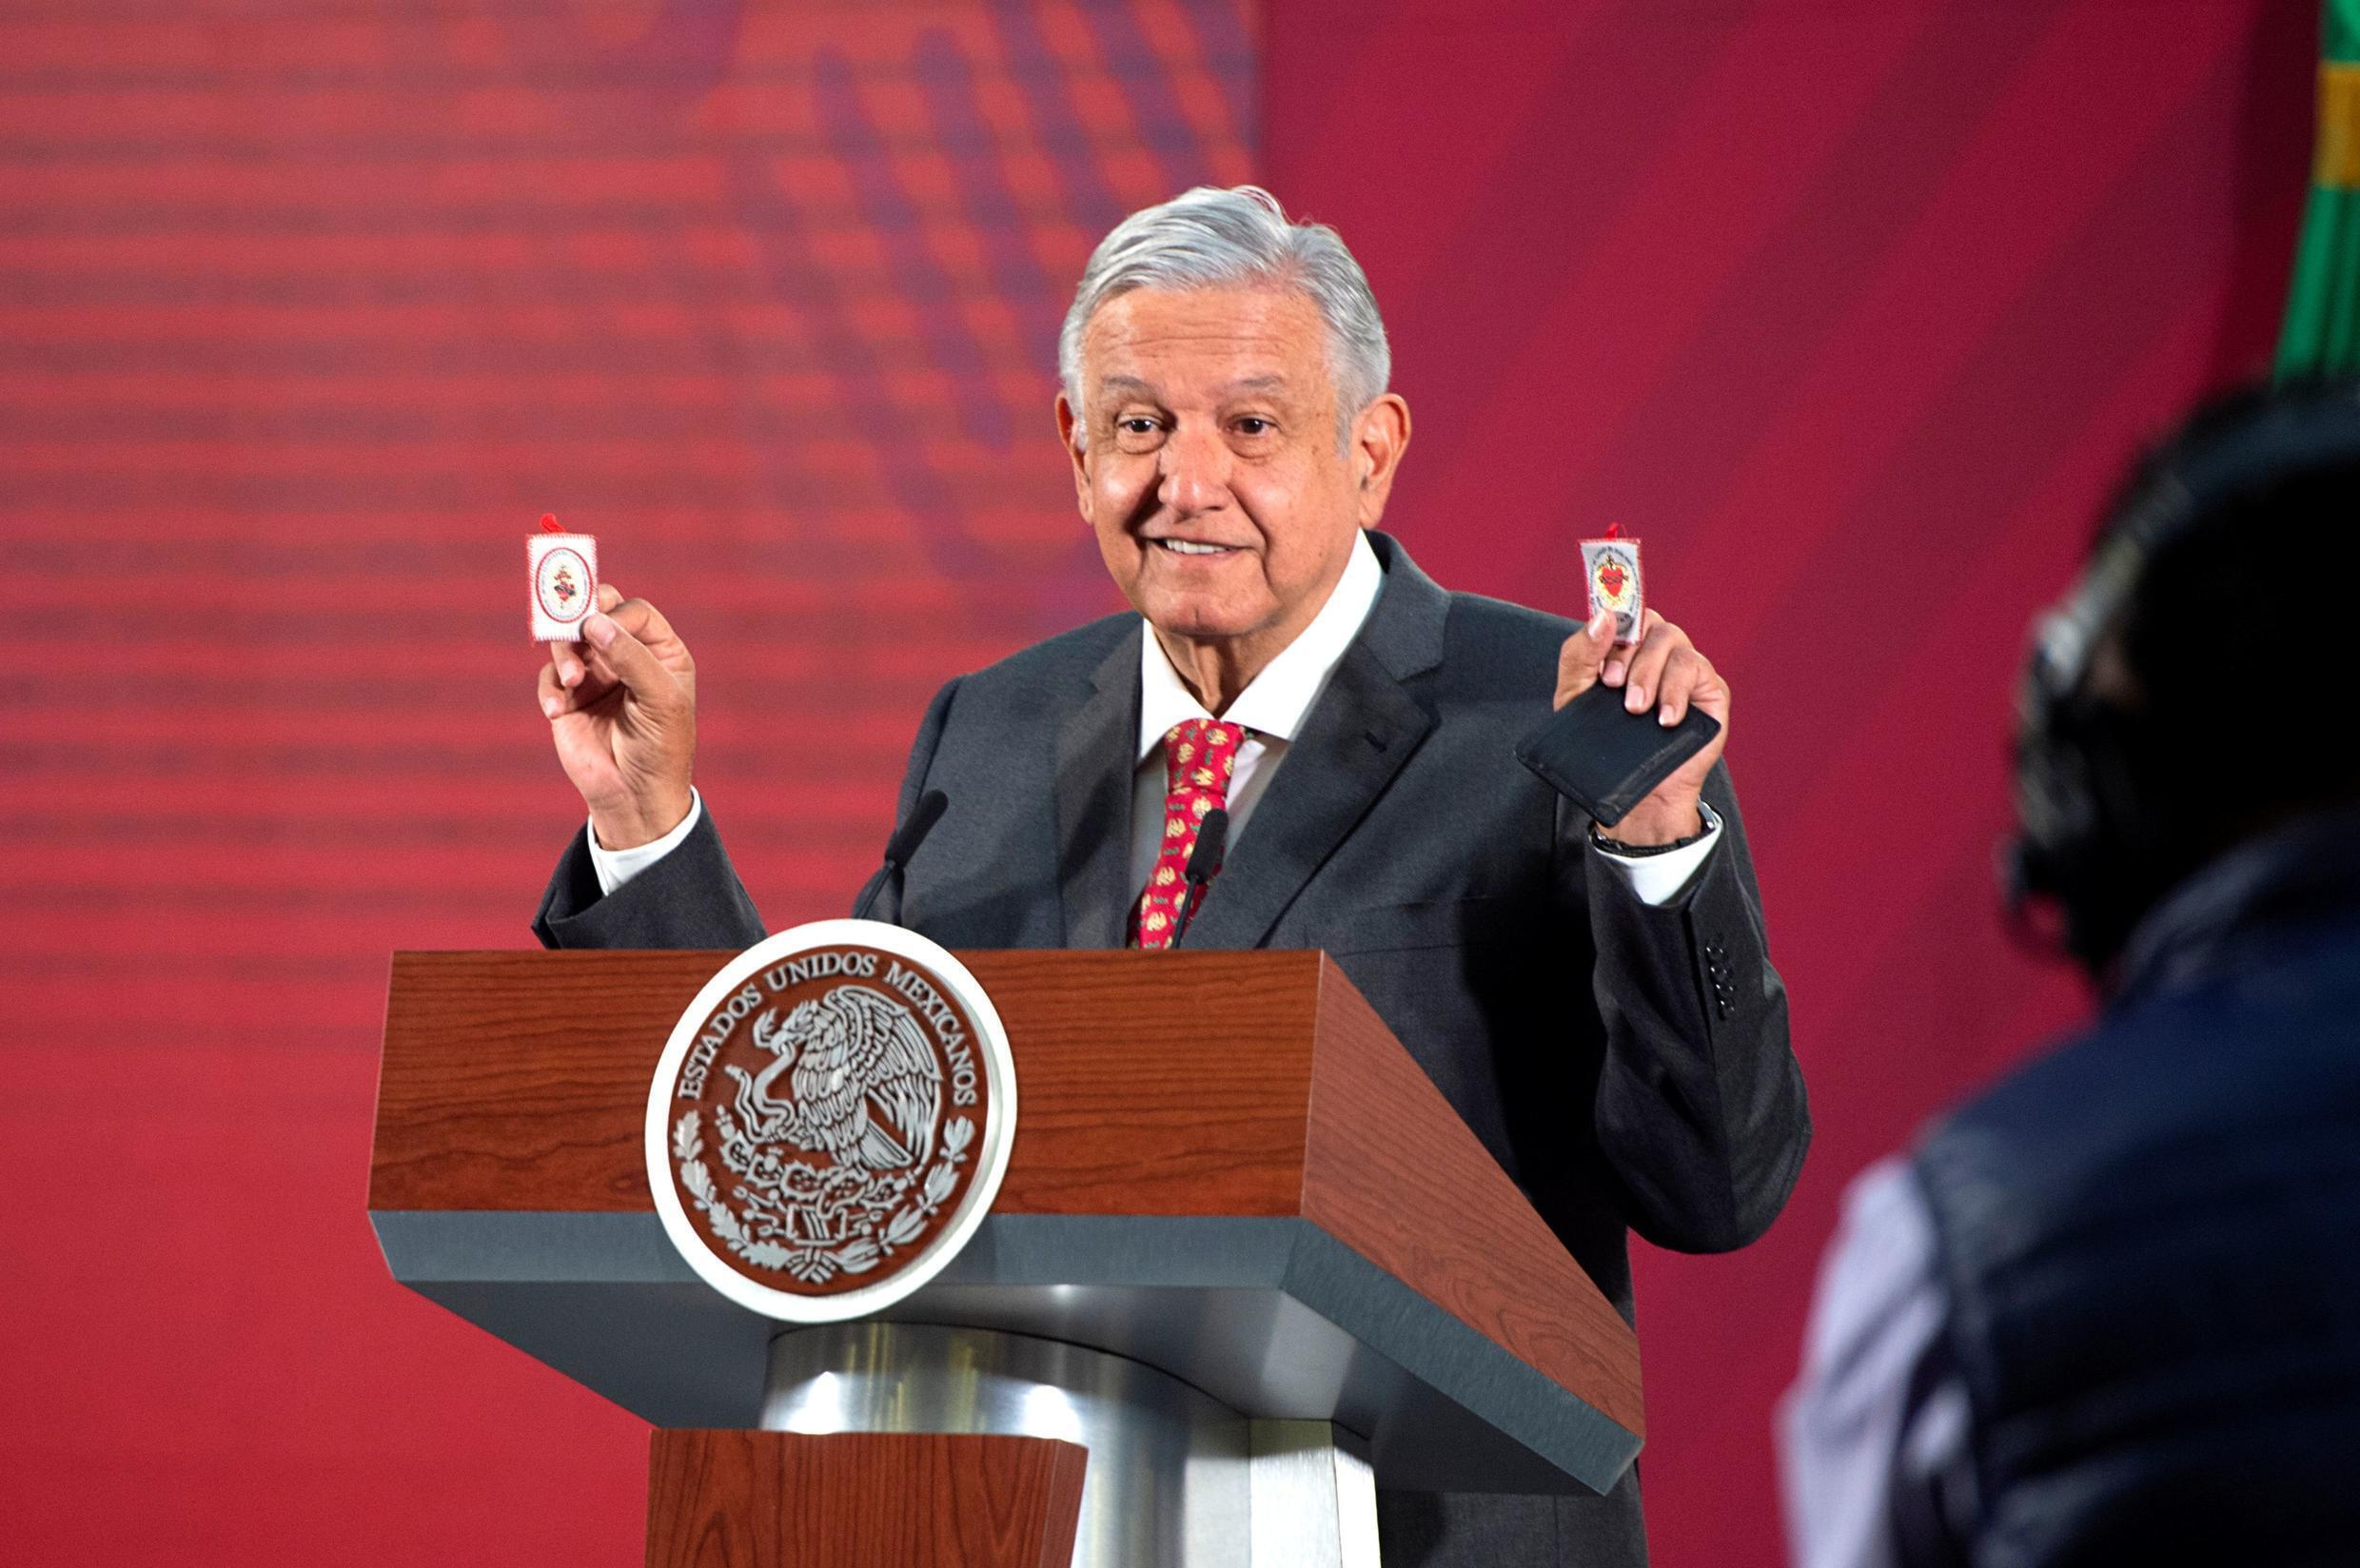 Mexico's President Andres Manuel Lopez Obrador shows his amulets, which he says serves him as a ?protective shield? against the coronavirus disease (COVID-19) along with his honesty and not allowing corruption, during a news conference at the National Palace in Mexico City, Mexico March 18, 2020.